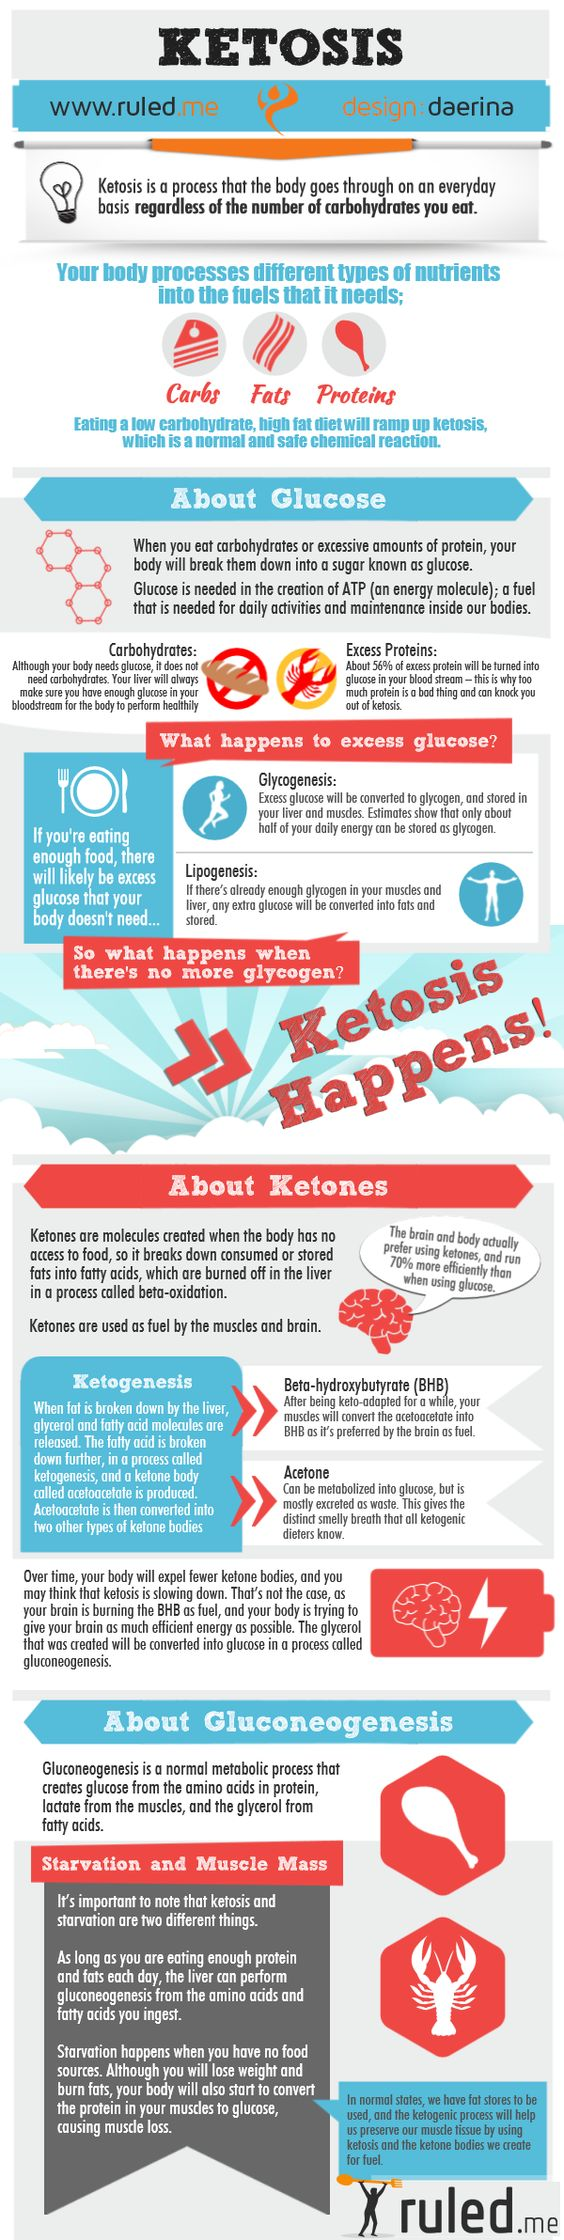 Fantastic Infographic about Ketosis, Ketones, and How it all Works! | Ruled Me: